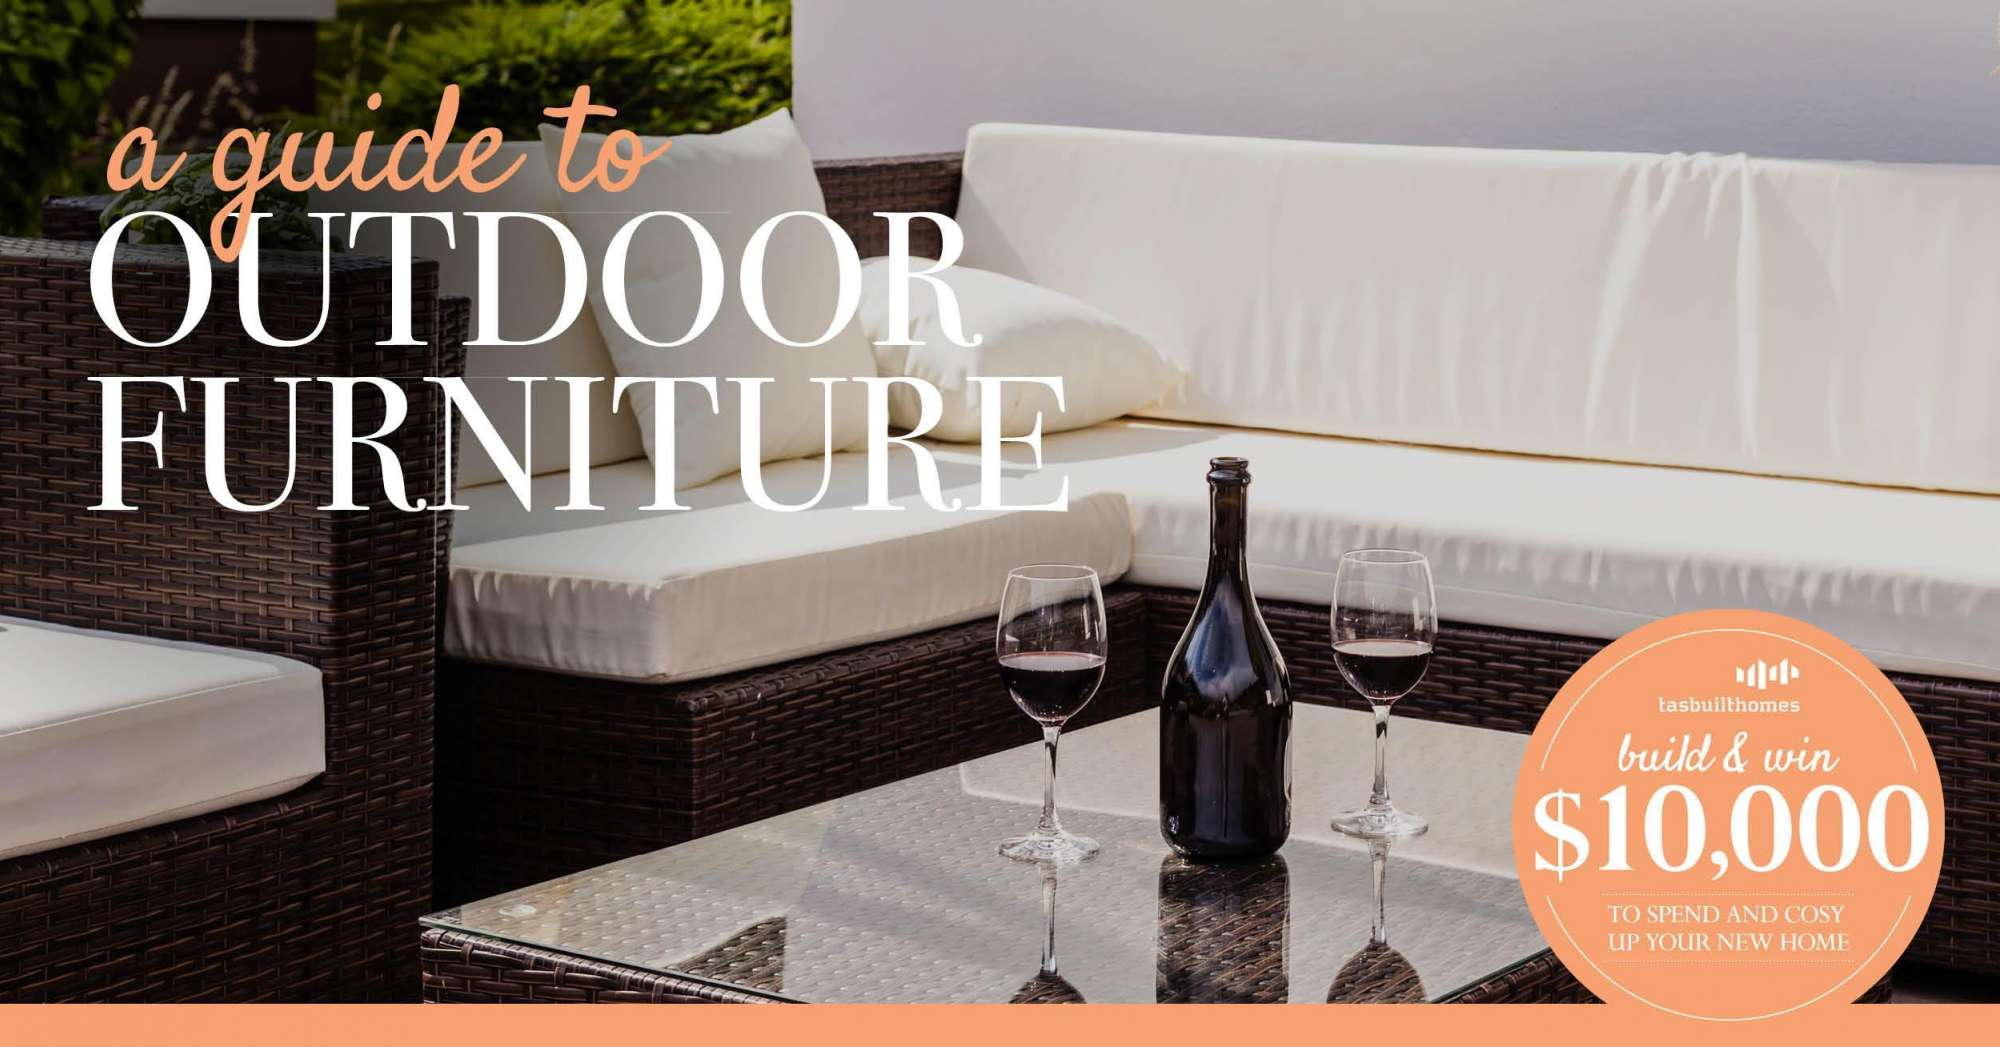 Guide-to-outdoor-furniture-jan-19